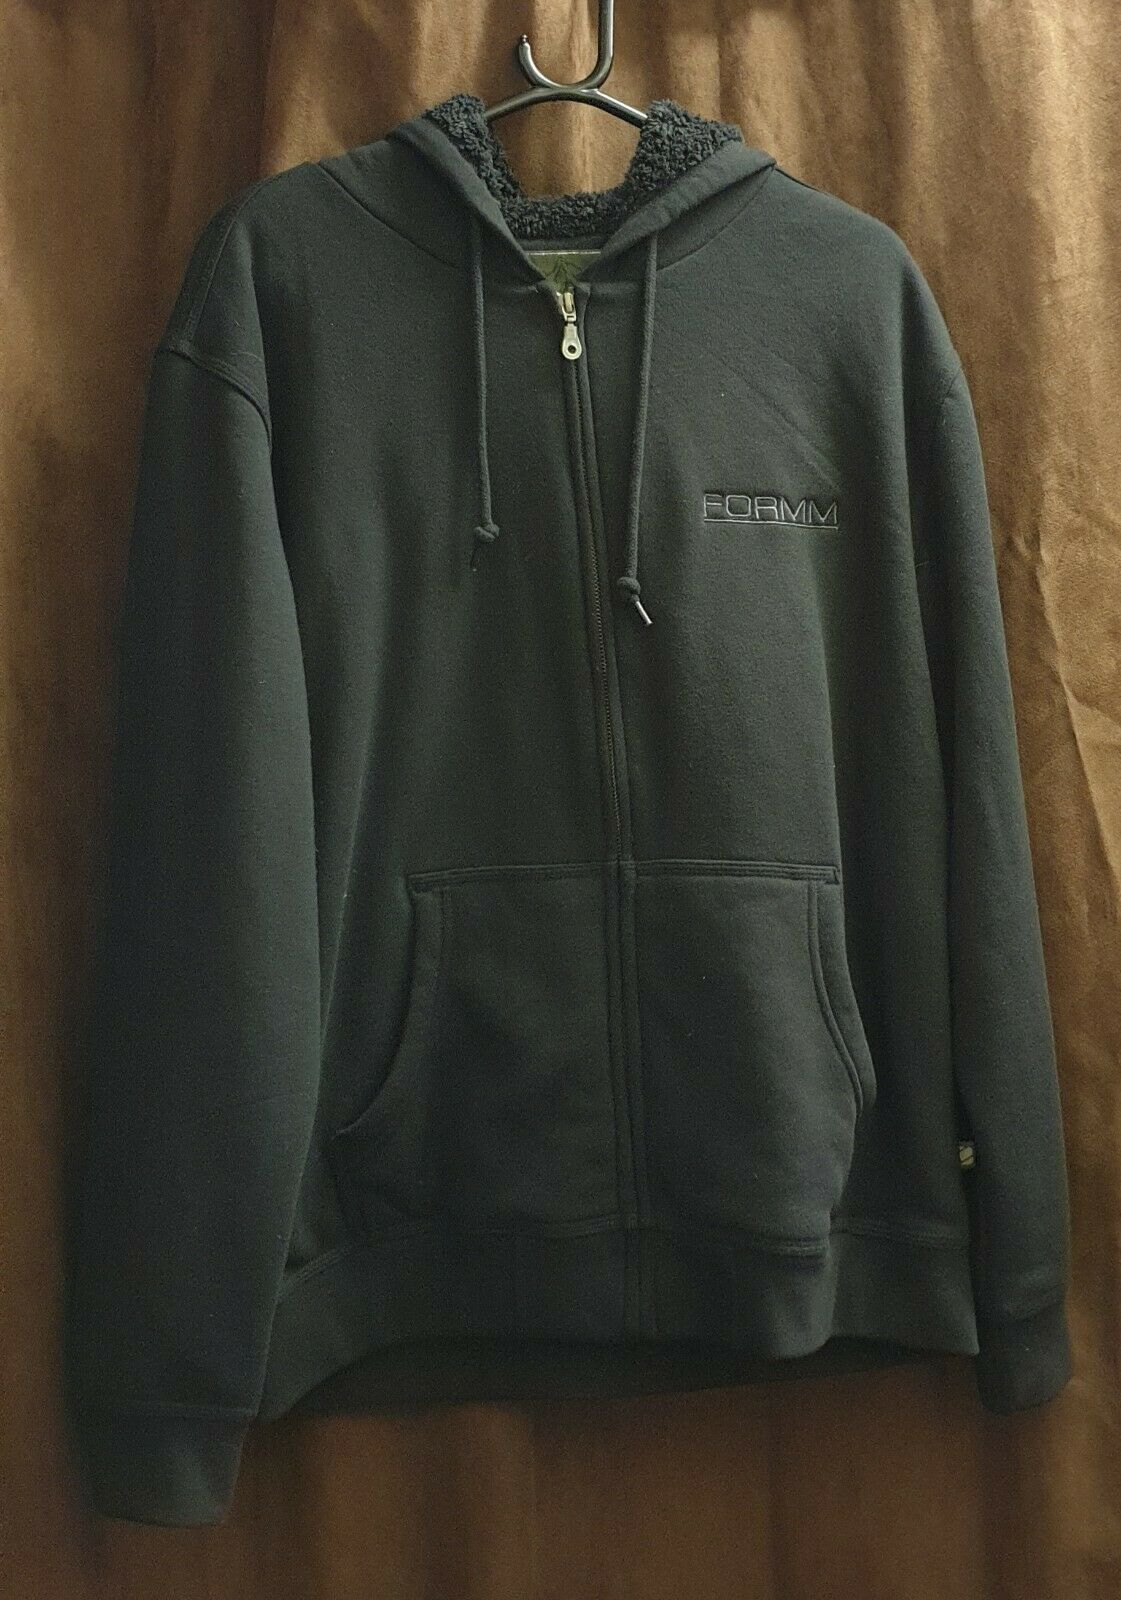 (Manor Park) Mens BC Clothing Co Black Size M Hoodie